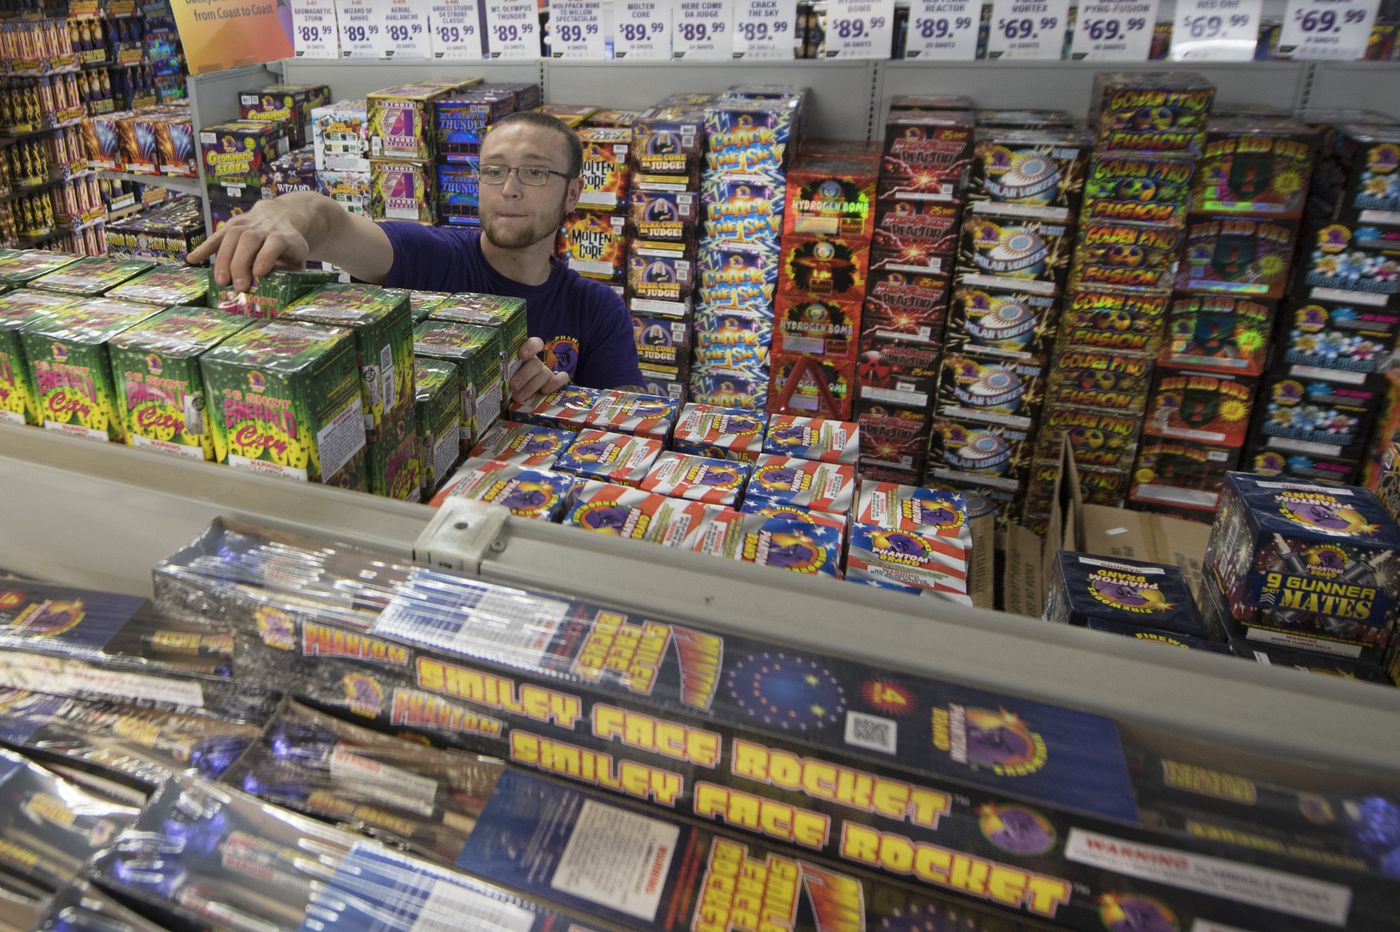 Fireworks sales are booming in Pennsylvania thanks to a change in the law